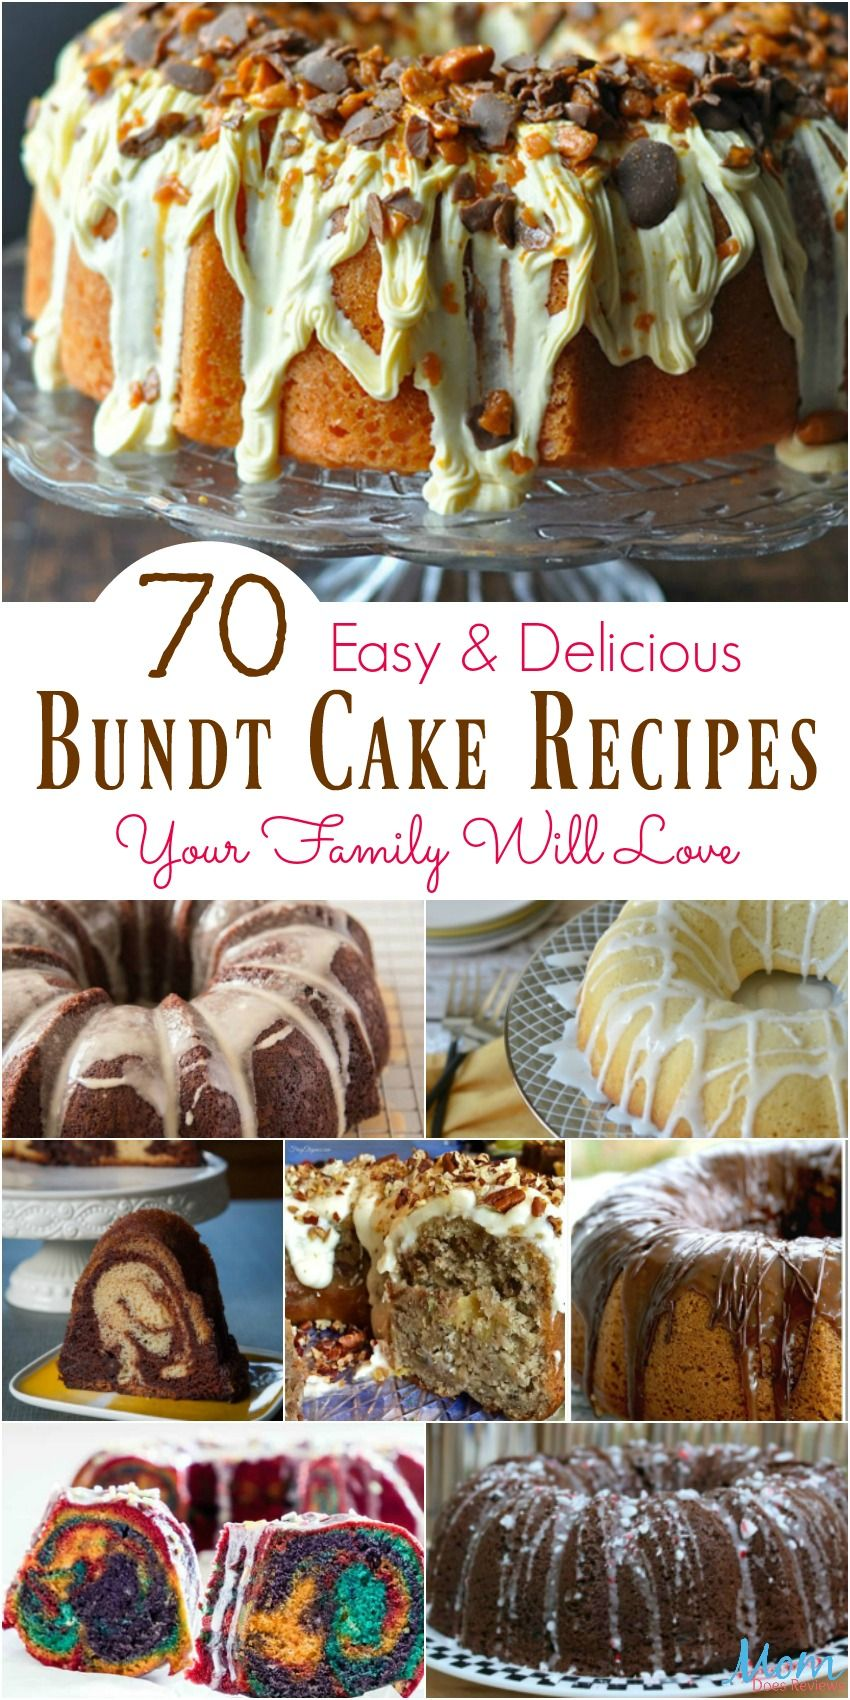 70 Easy & Delicious Bundt Cake Recipes Your Family Will Love